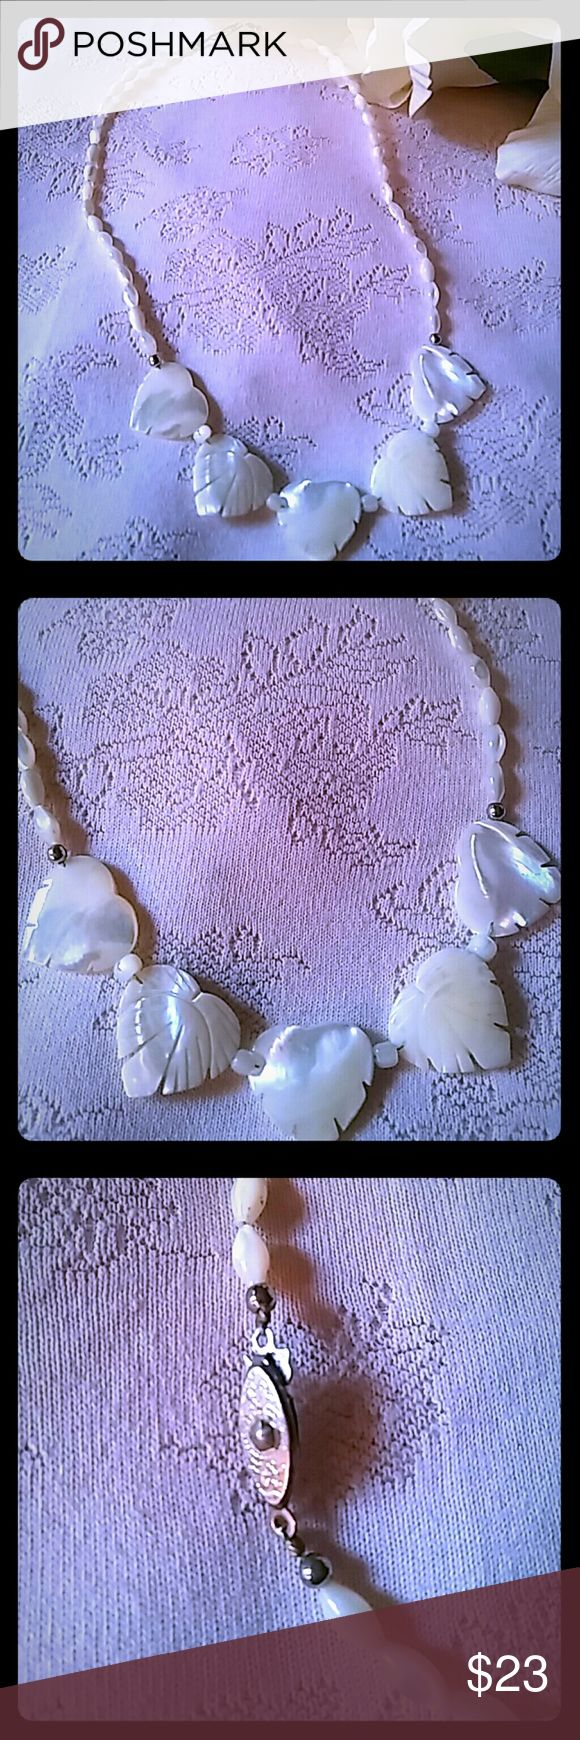 Vintage Carved Mother of Pearl Necklace Vintage item from the 1960s. Unique mother of pearl necklace consisting of beautifully carved mother of pearl heart-shaped leaves and cylindrical mother of pearl beads. Jewelry Necklaces